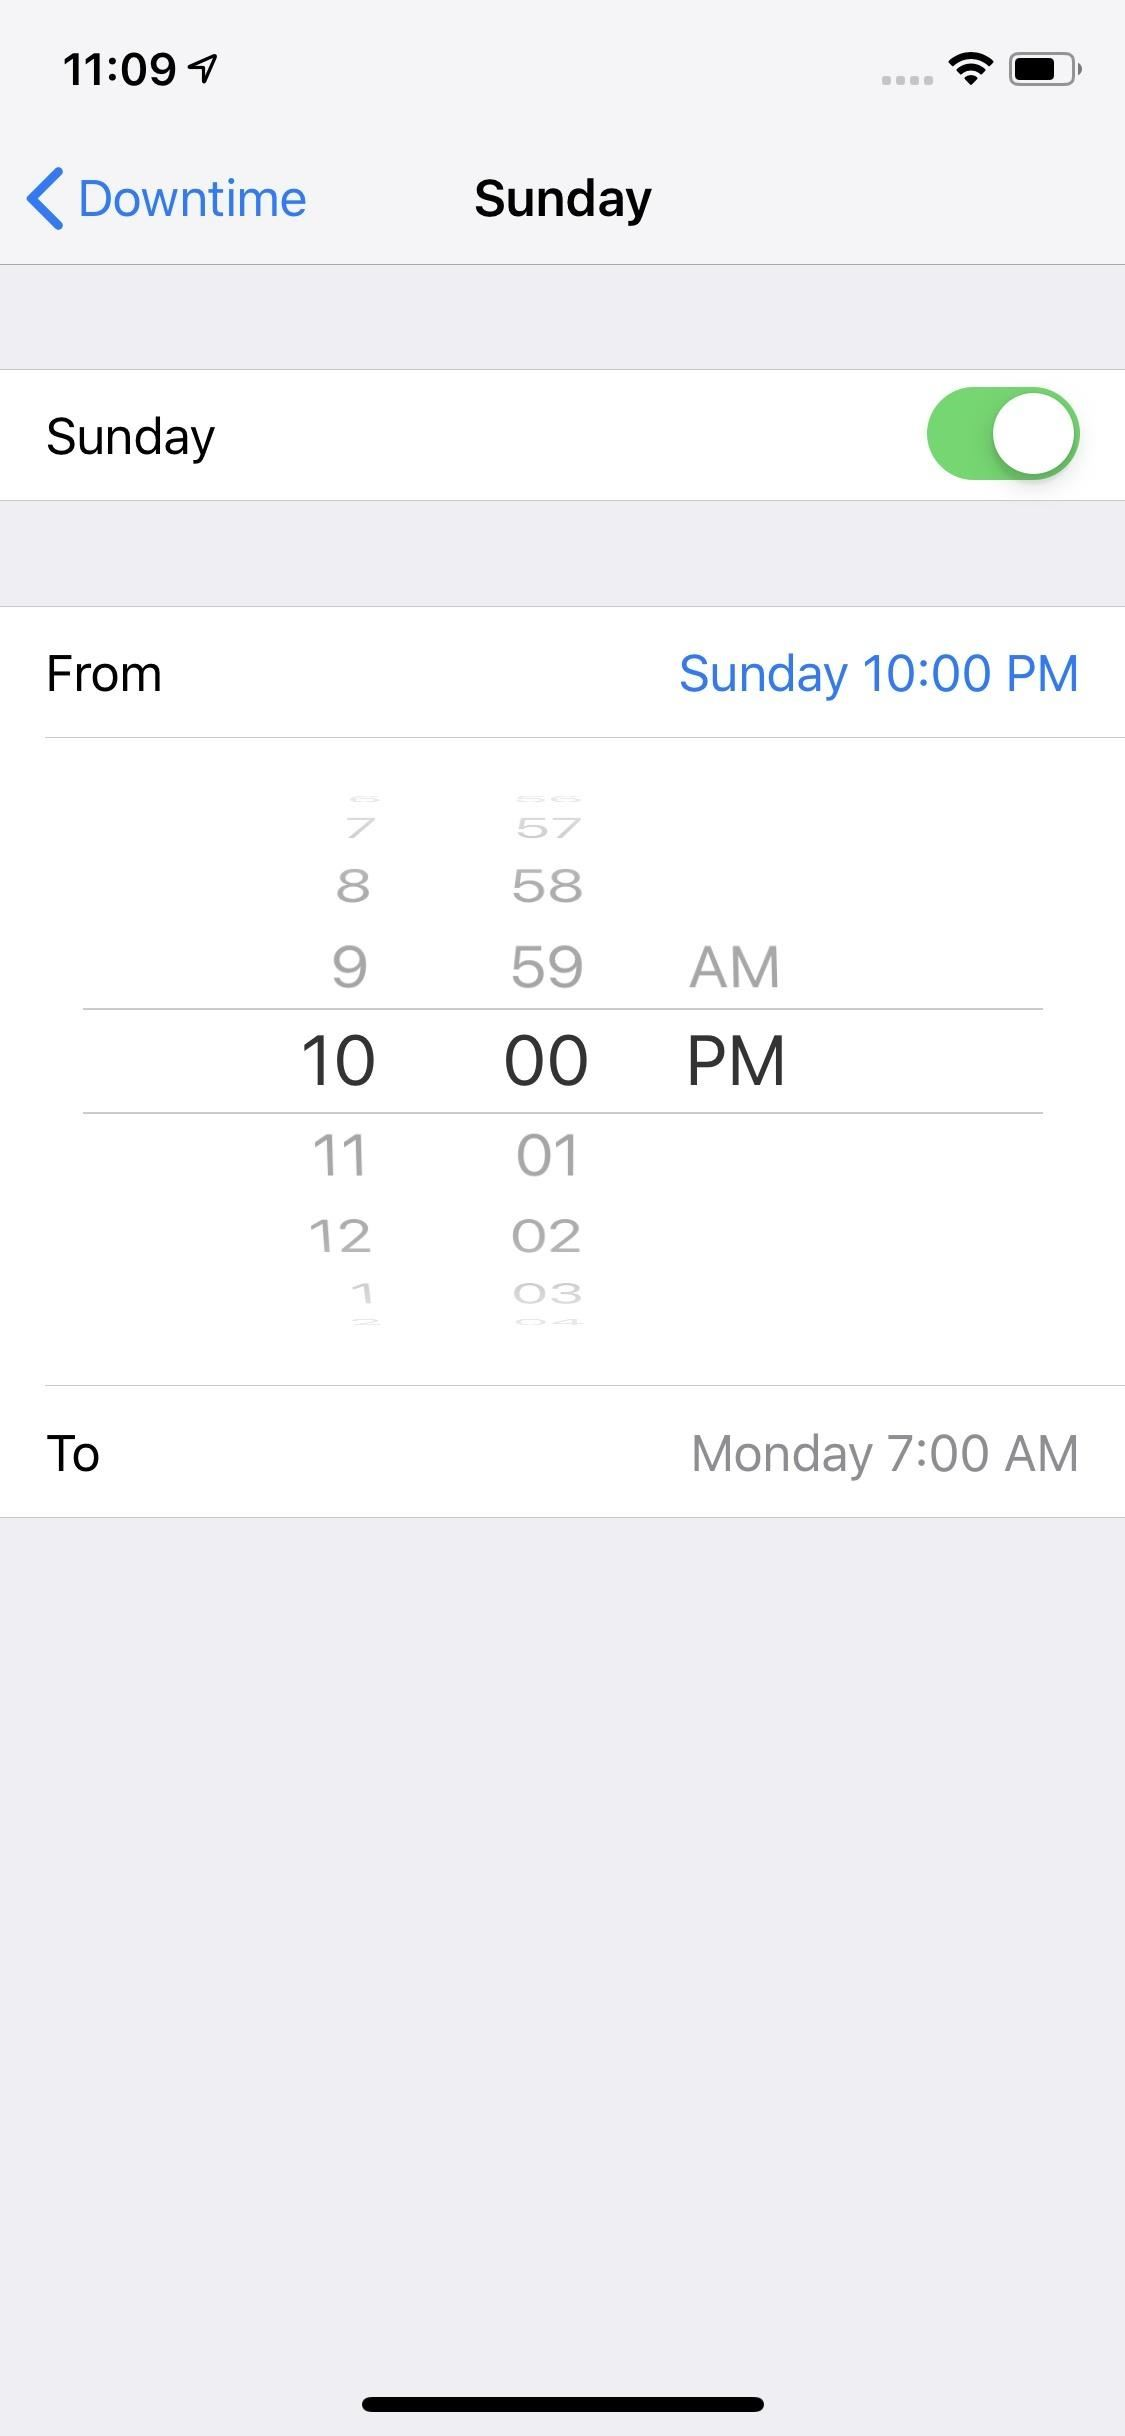 How to Set Different Downtime Schedules on Your iPhone for Each Day of the Week